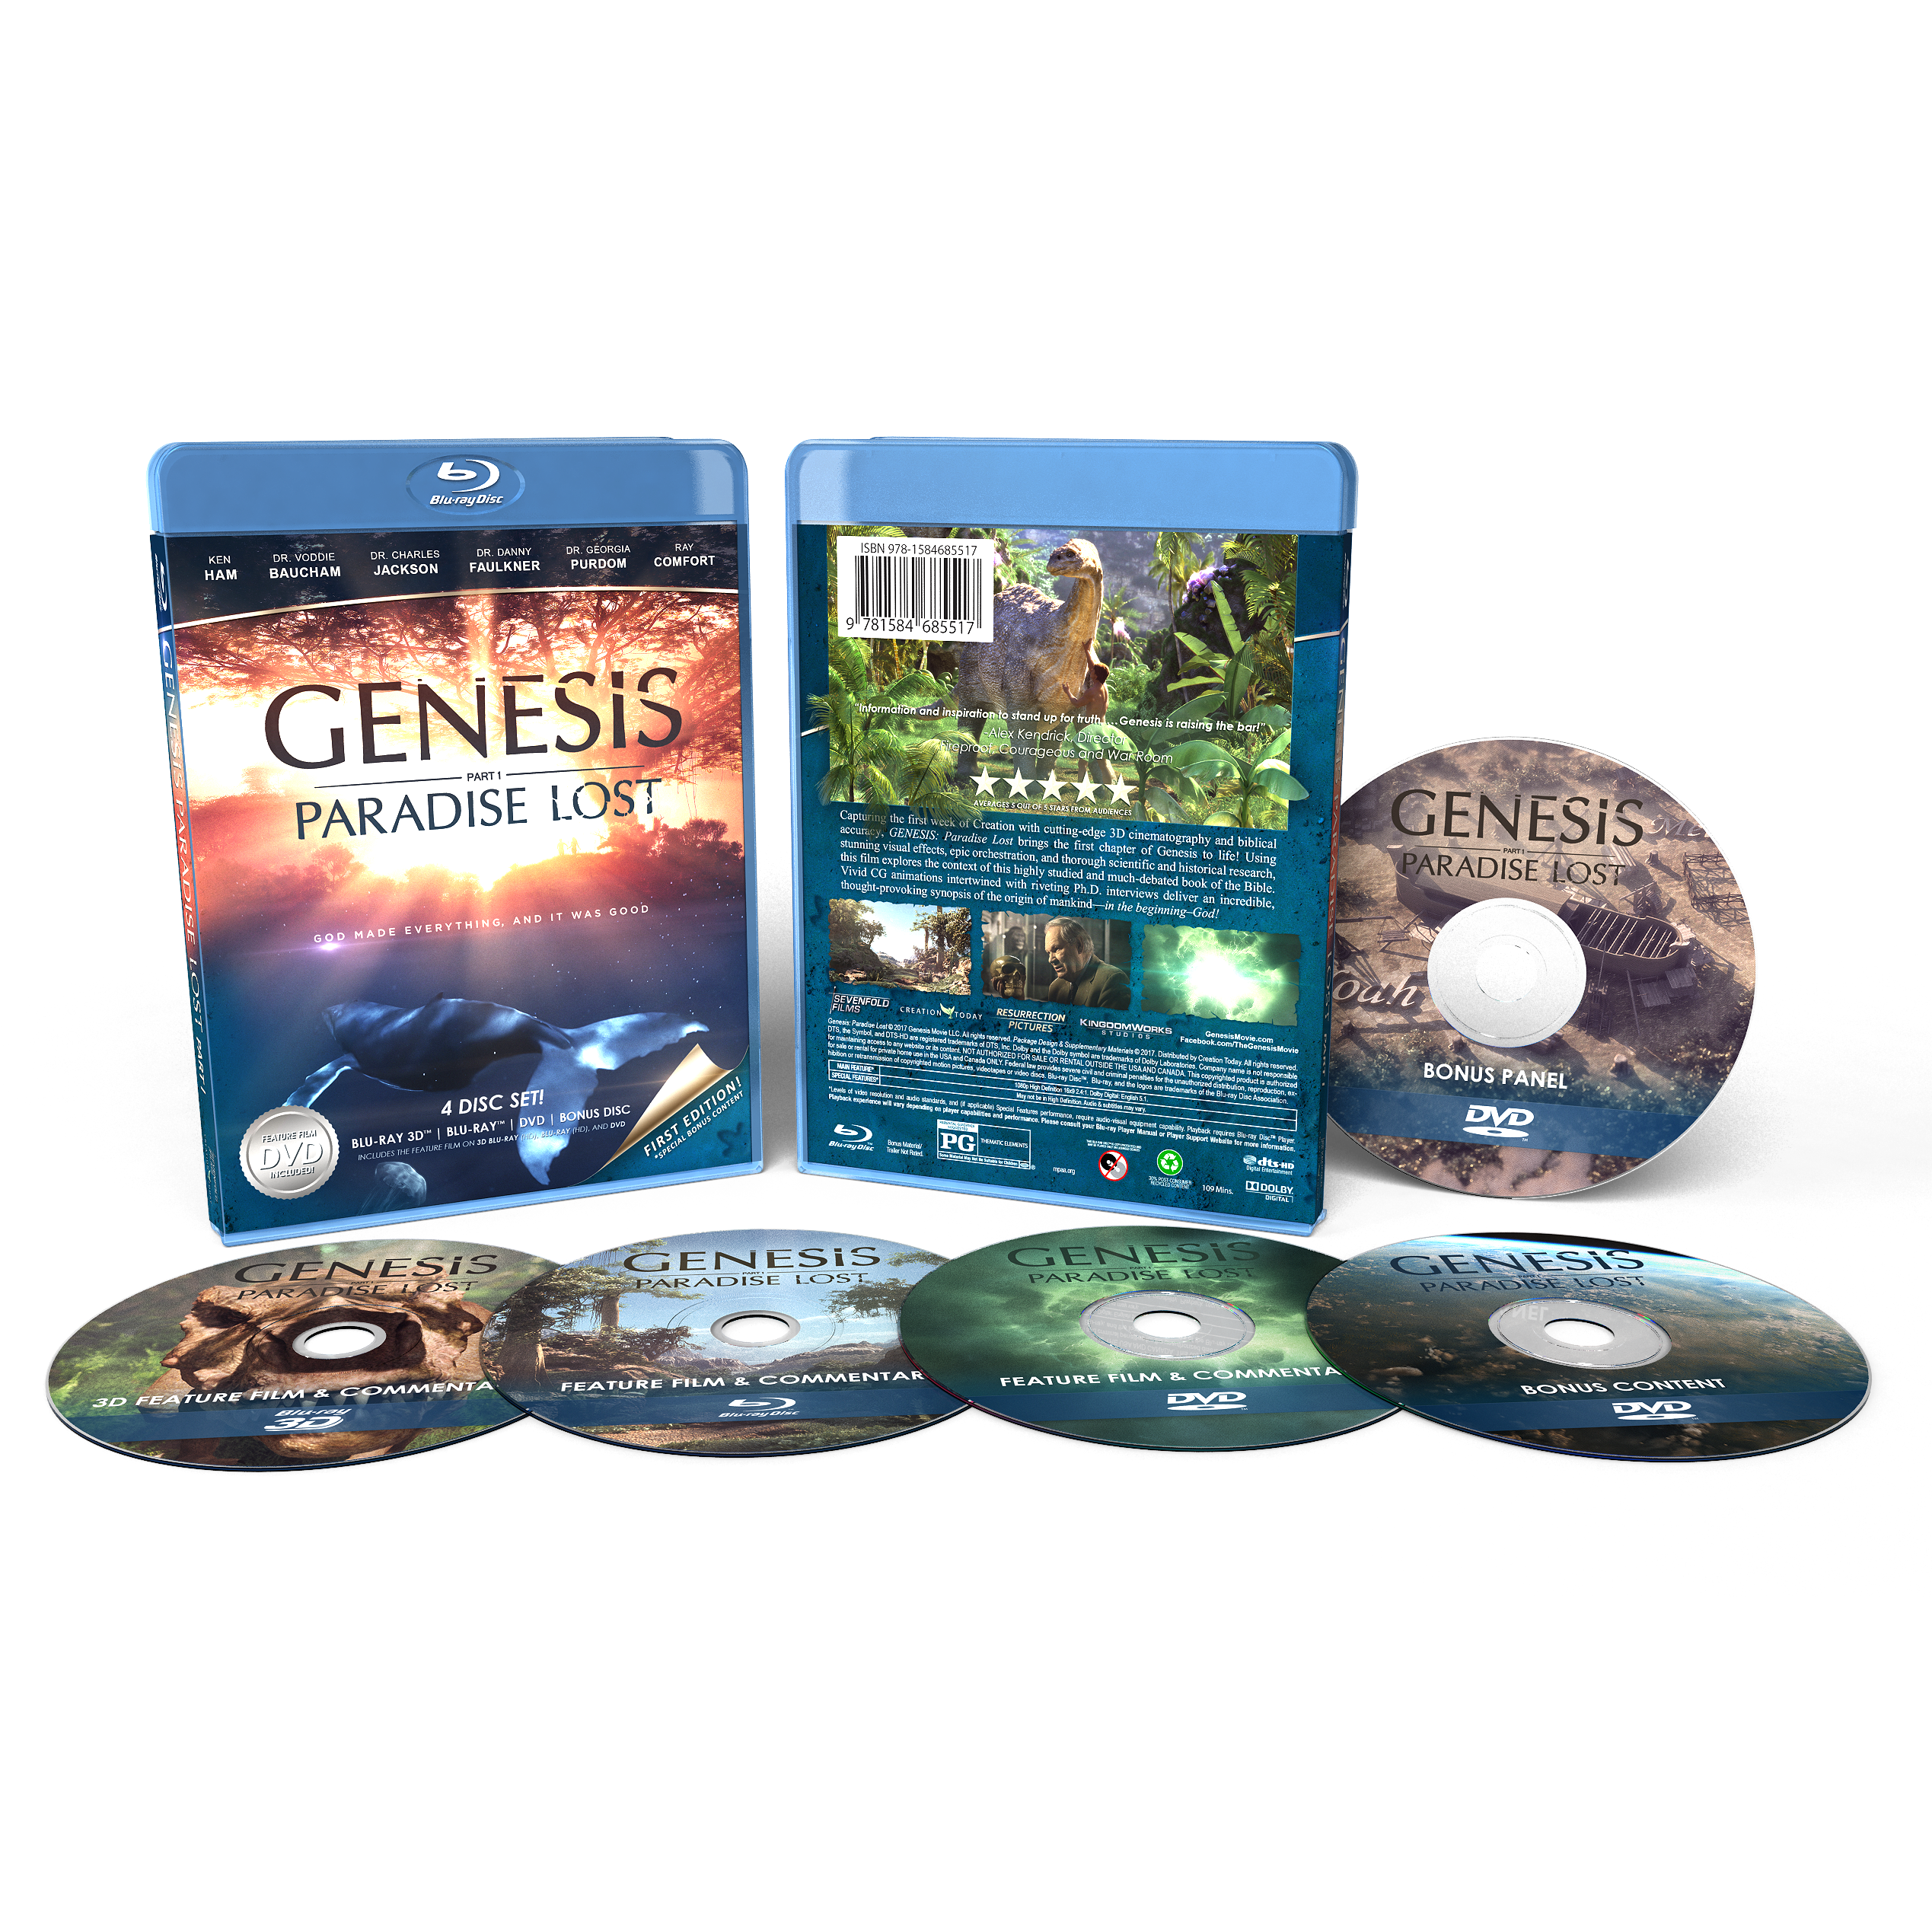 Genesis: Paradise Lost Blu Ray Bundle